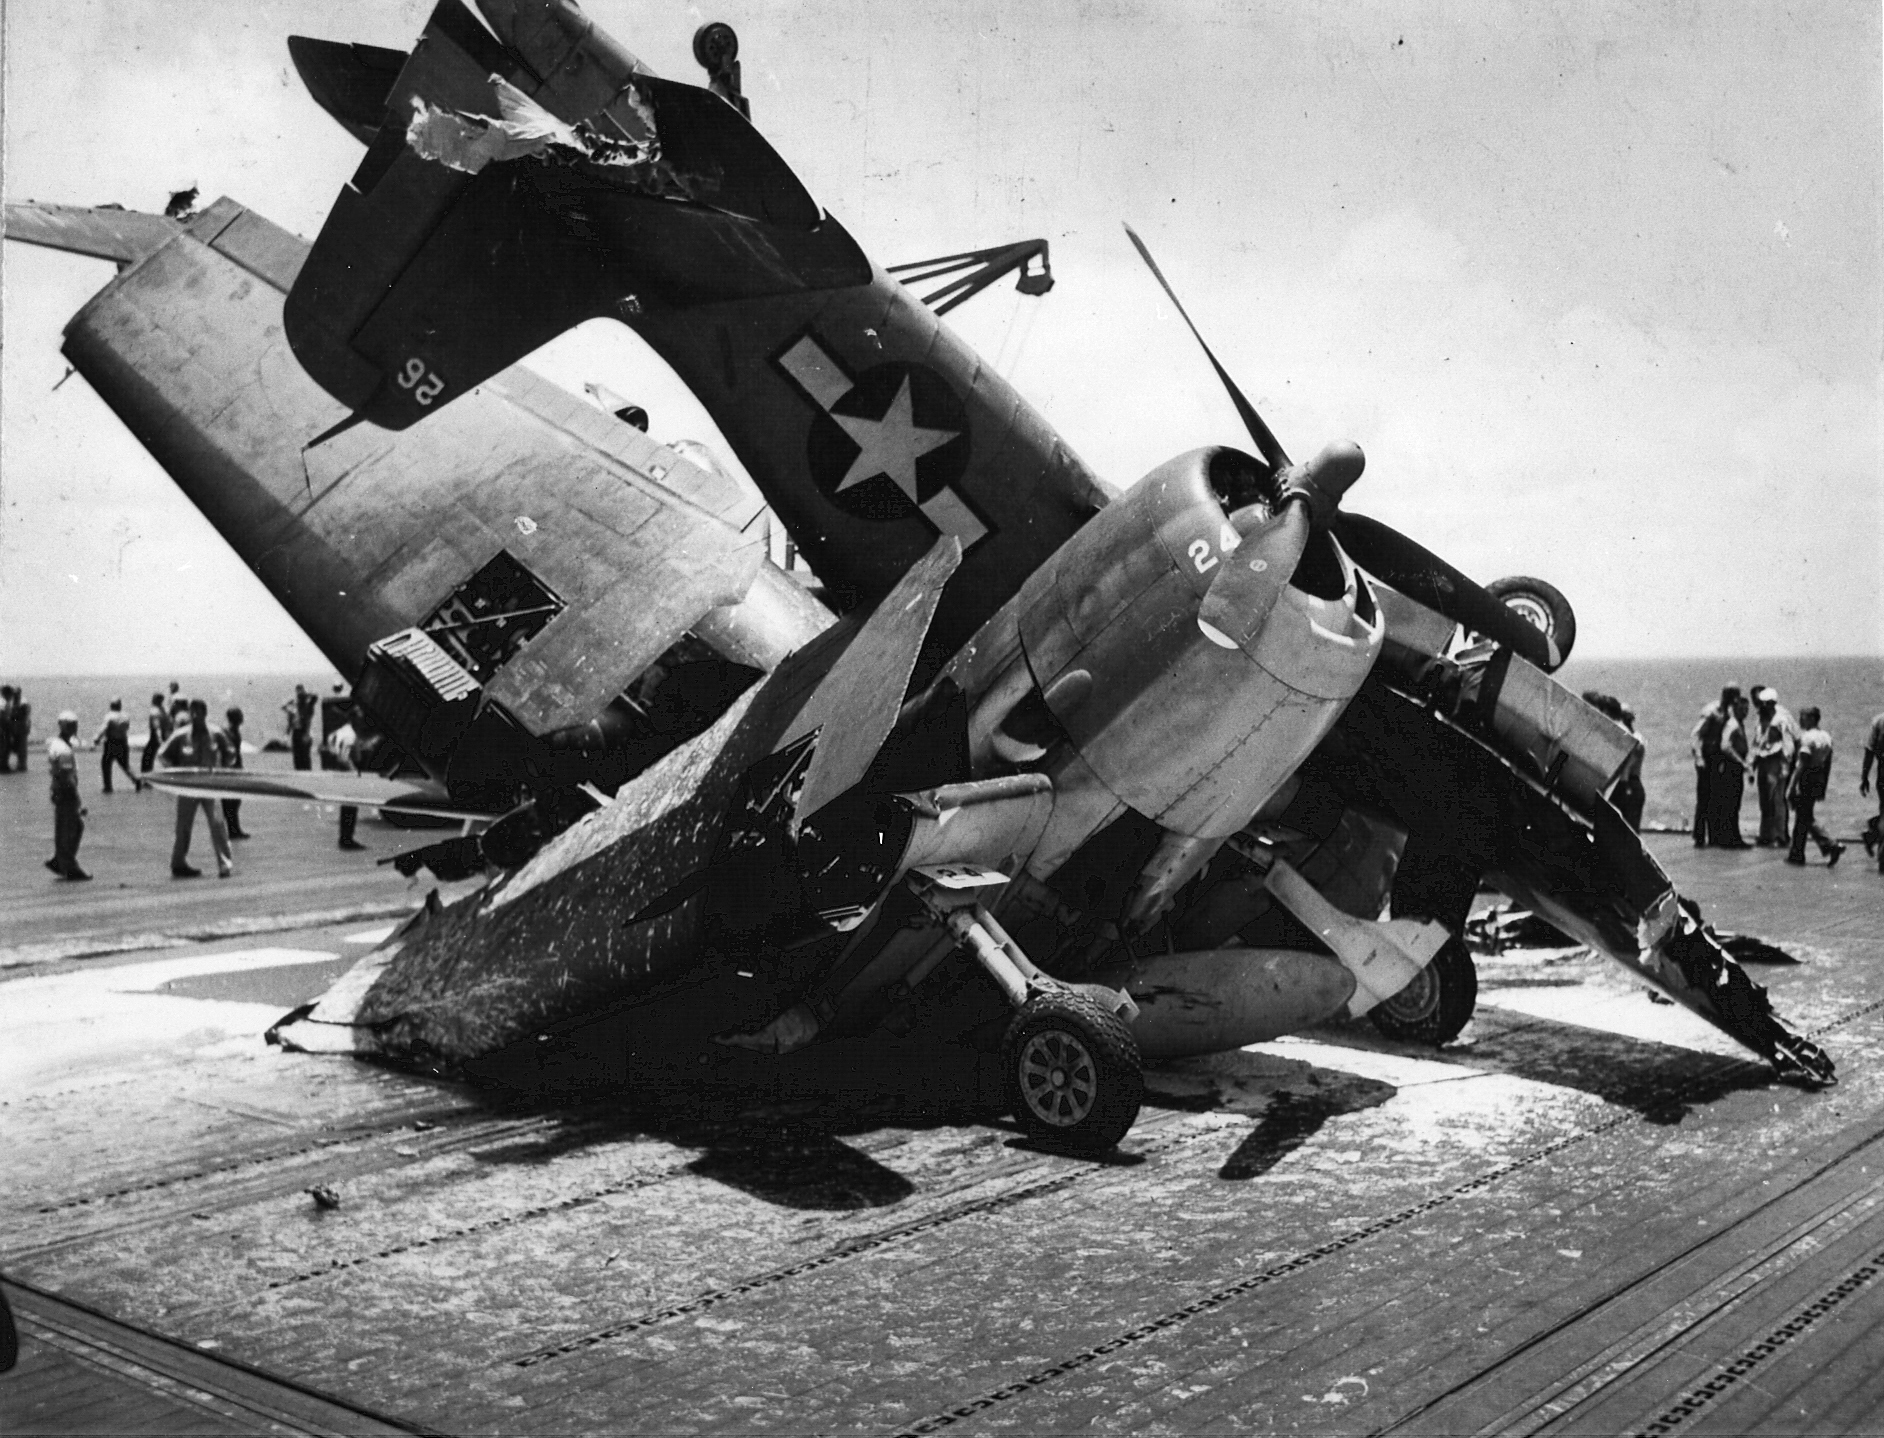 Grumman F6F 3 Hellcat VF 19 White 26 crashed into elevator and damaged 24 CV 16 USS Lexington 01